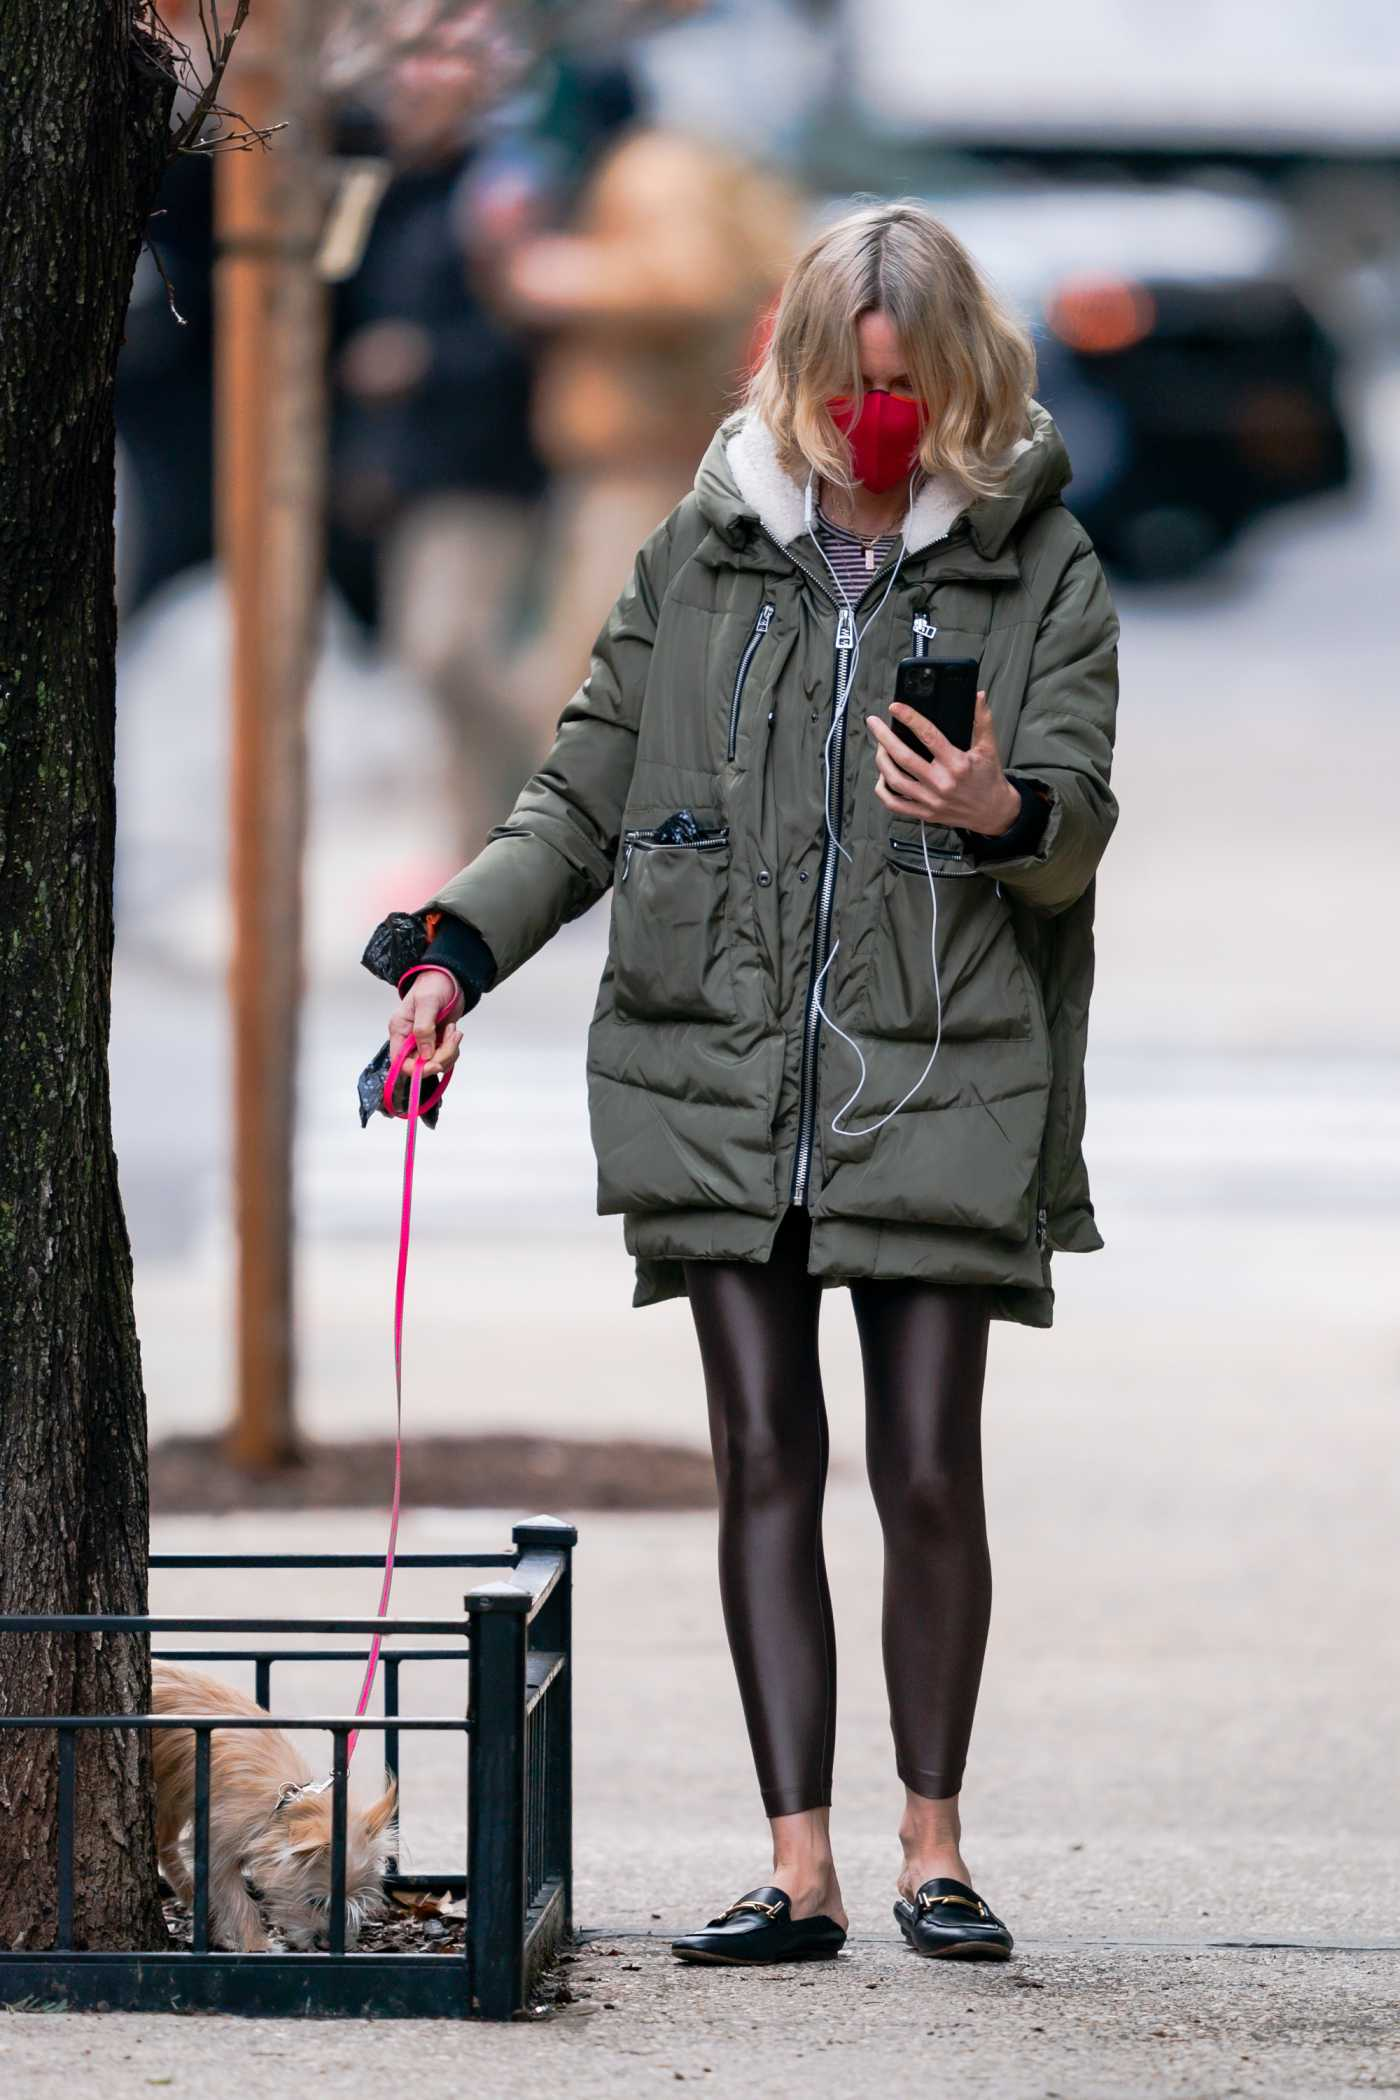 Naomi Watts in an Olive Jacket Walks Her Dog in New York 01/16/2021